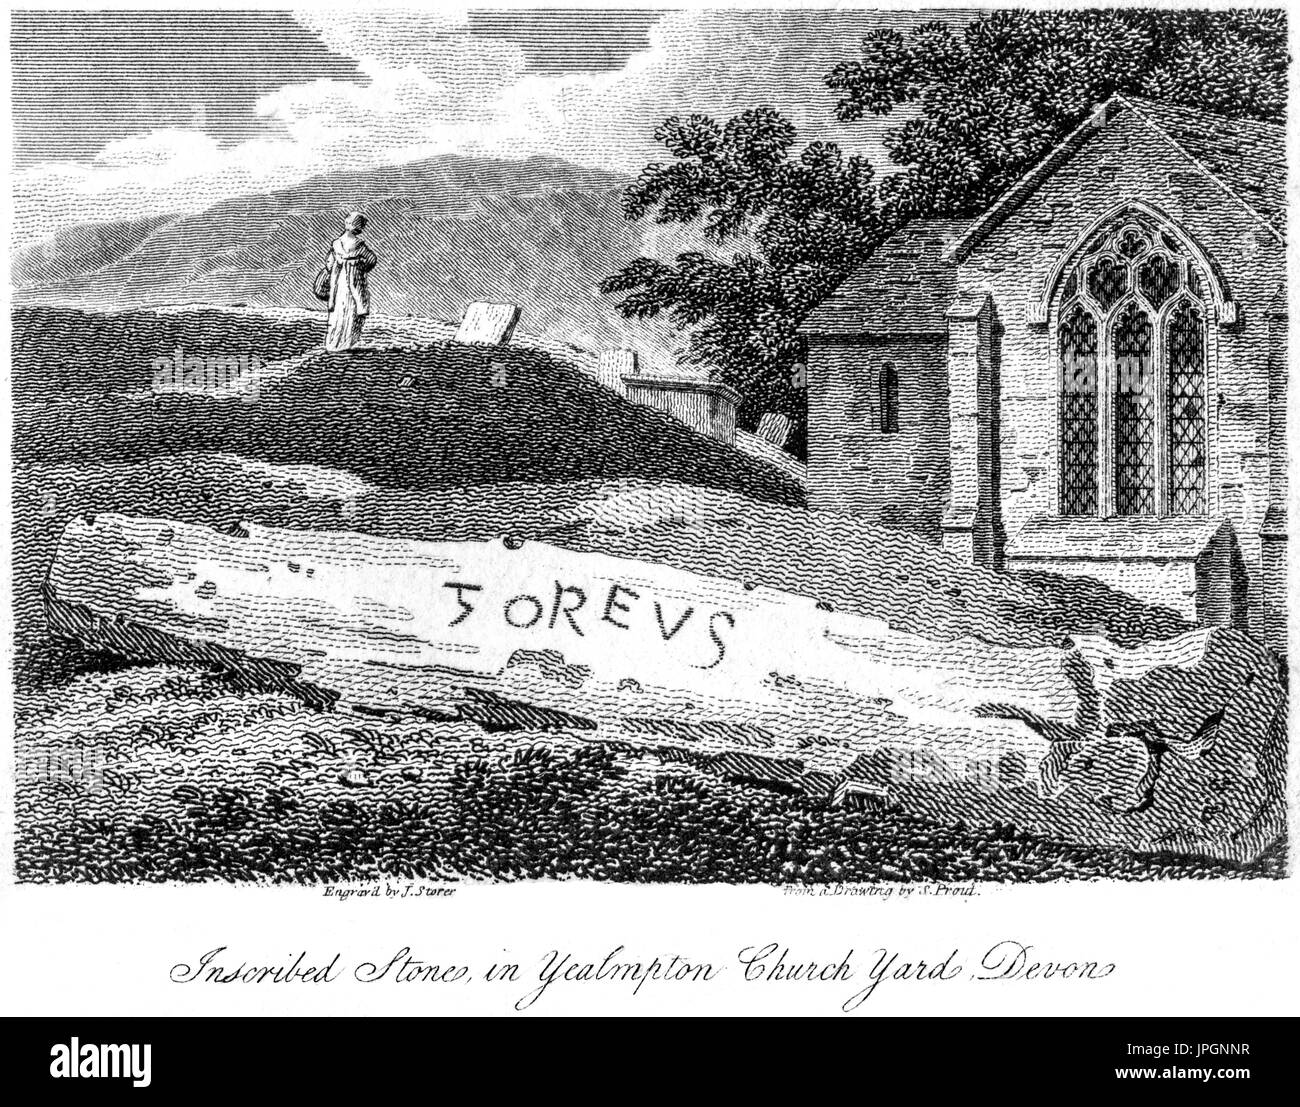 Engraving of an Inscribed Stone (Goreus Stone) in Yealmpton Church Yard, Devon scanned at high res from a book of 1808.  Believed copyright free. - Stock Image